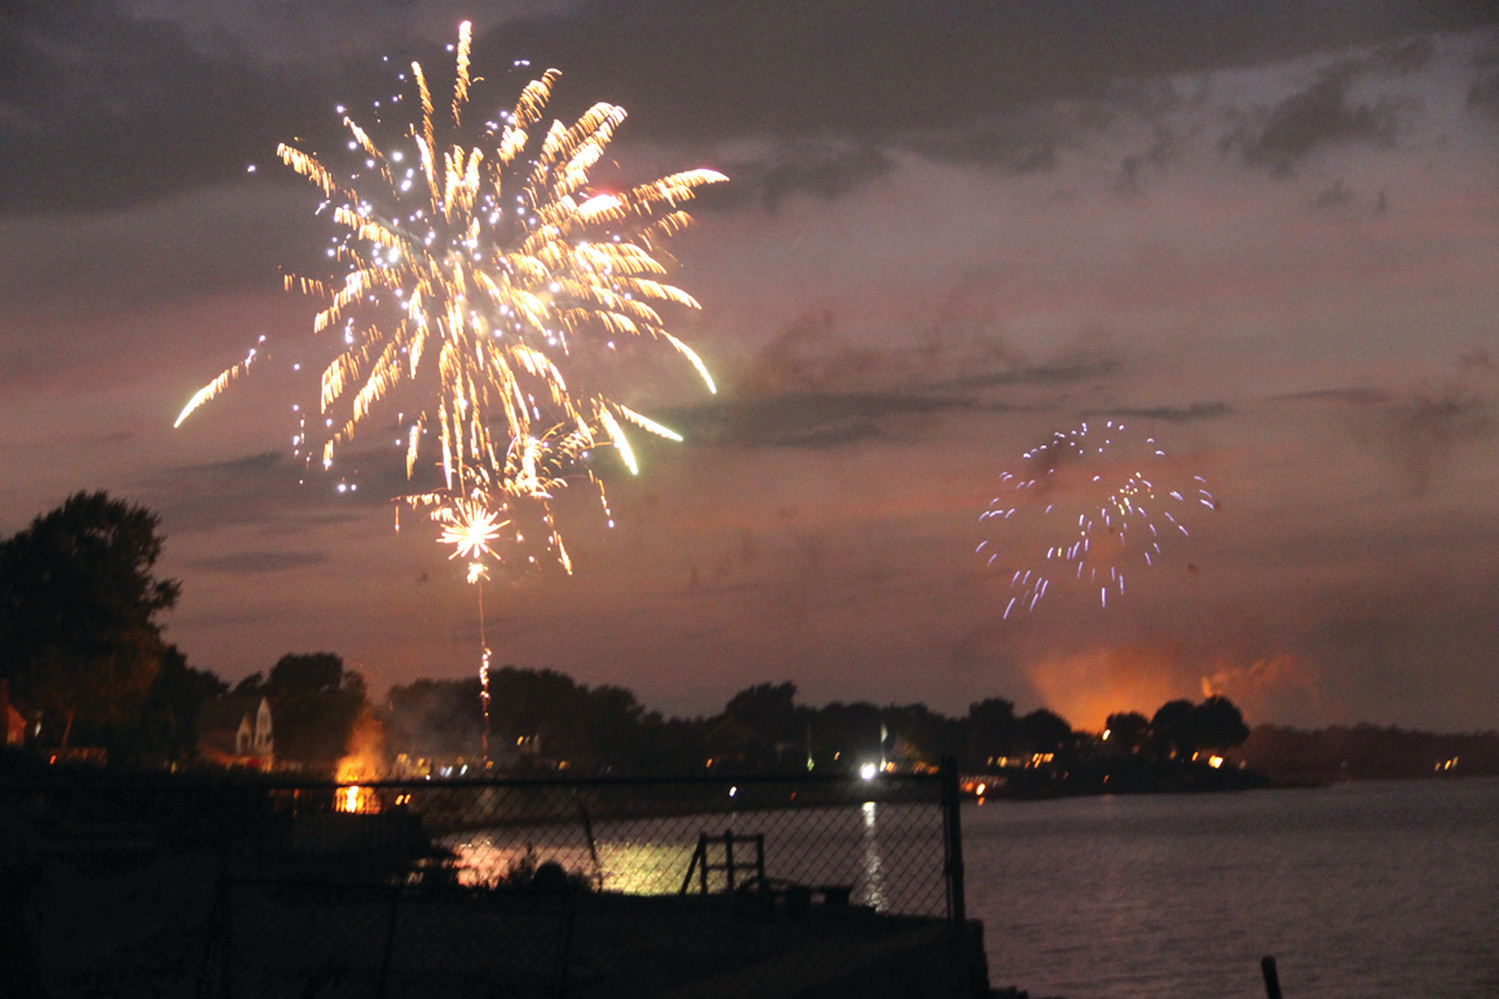 fireworks exploded in colorful frenzies all throughout the city on July 3. These blasts were seen from the shores of Conimicut in Warwick.